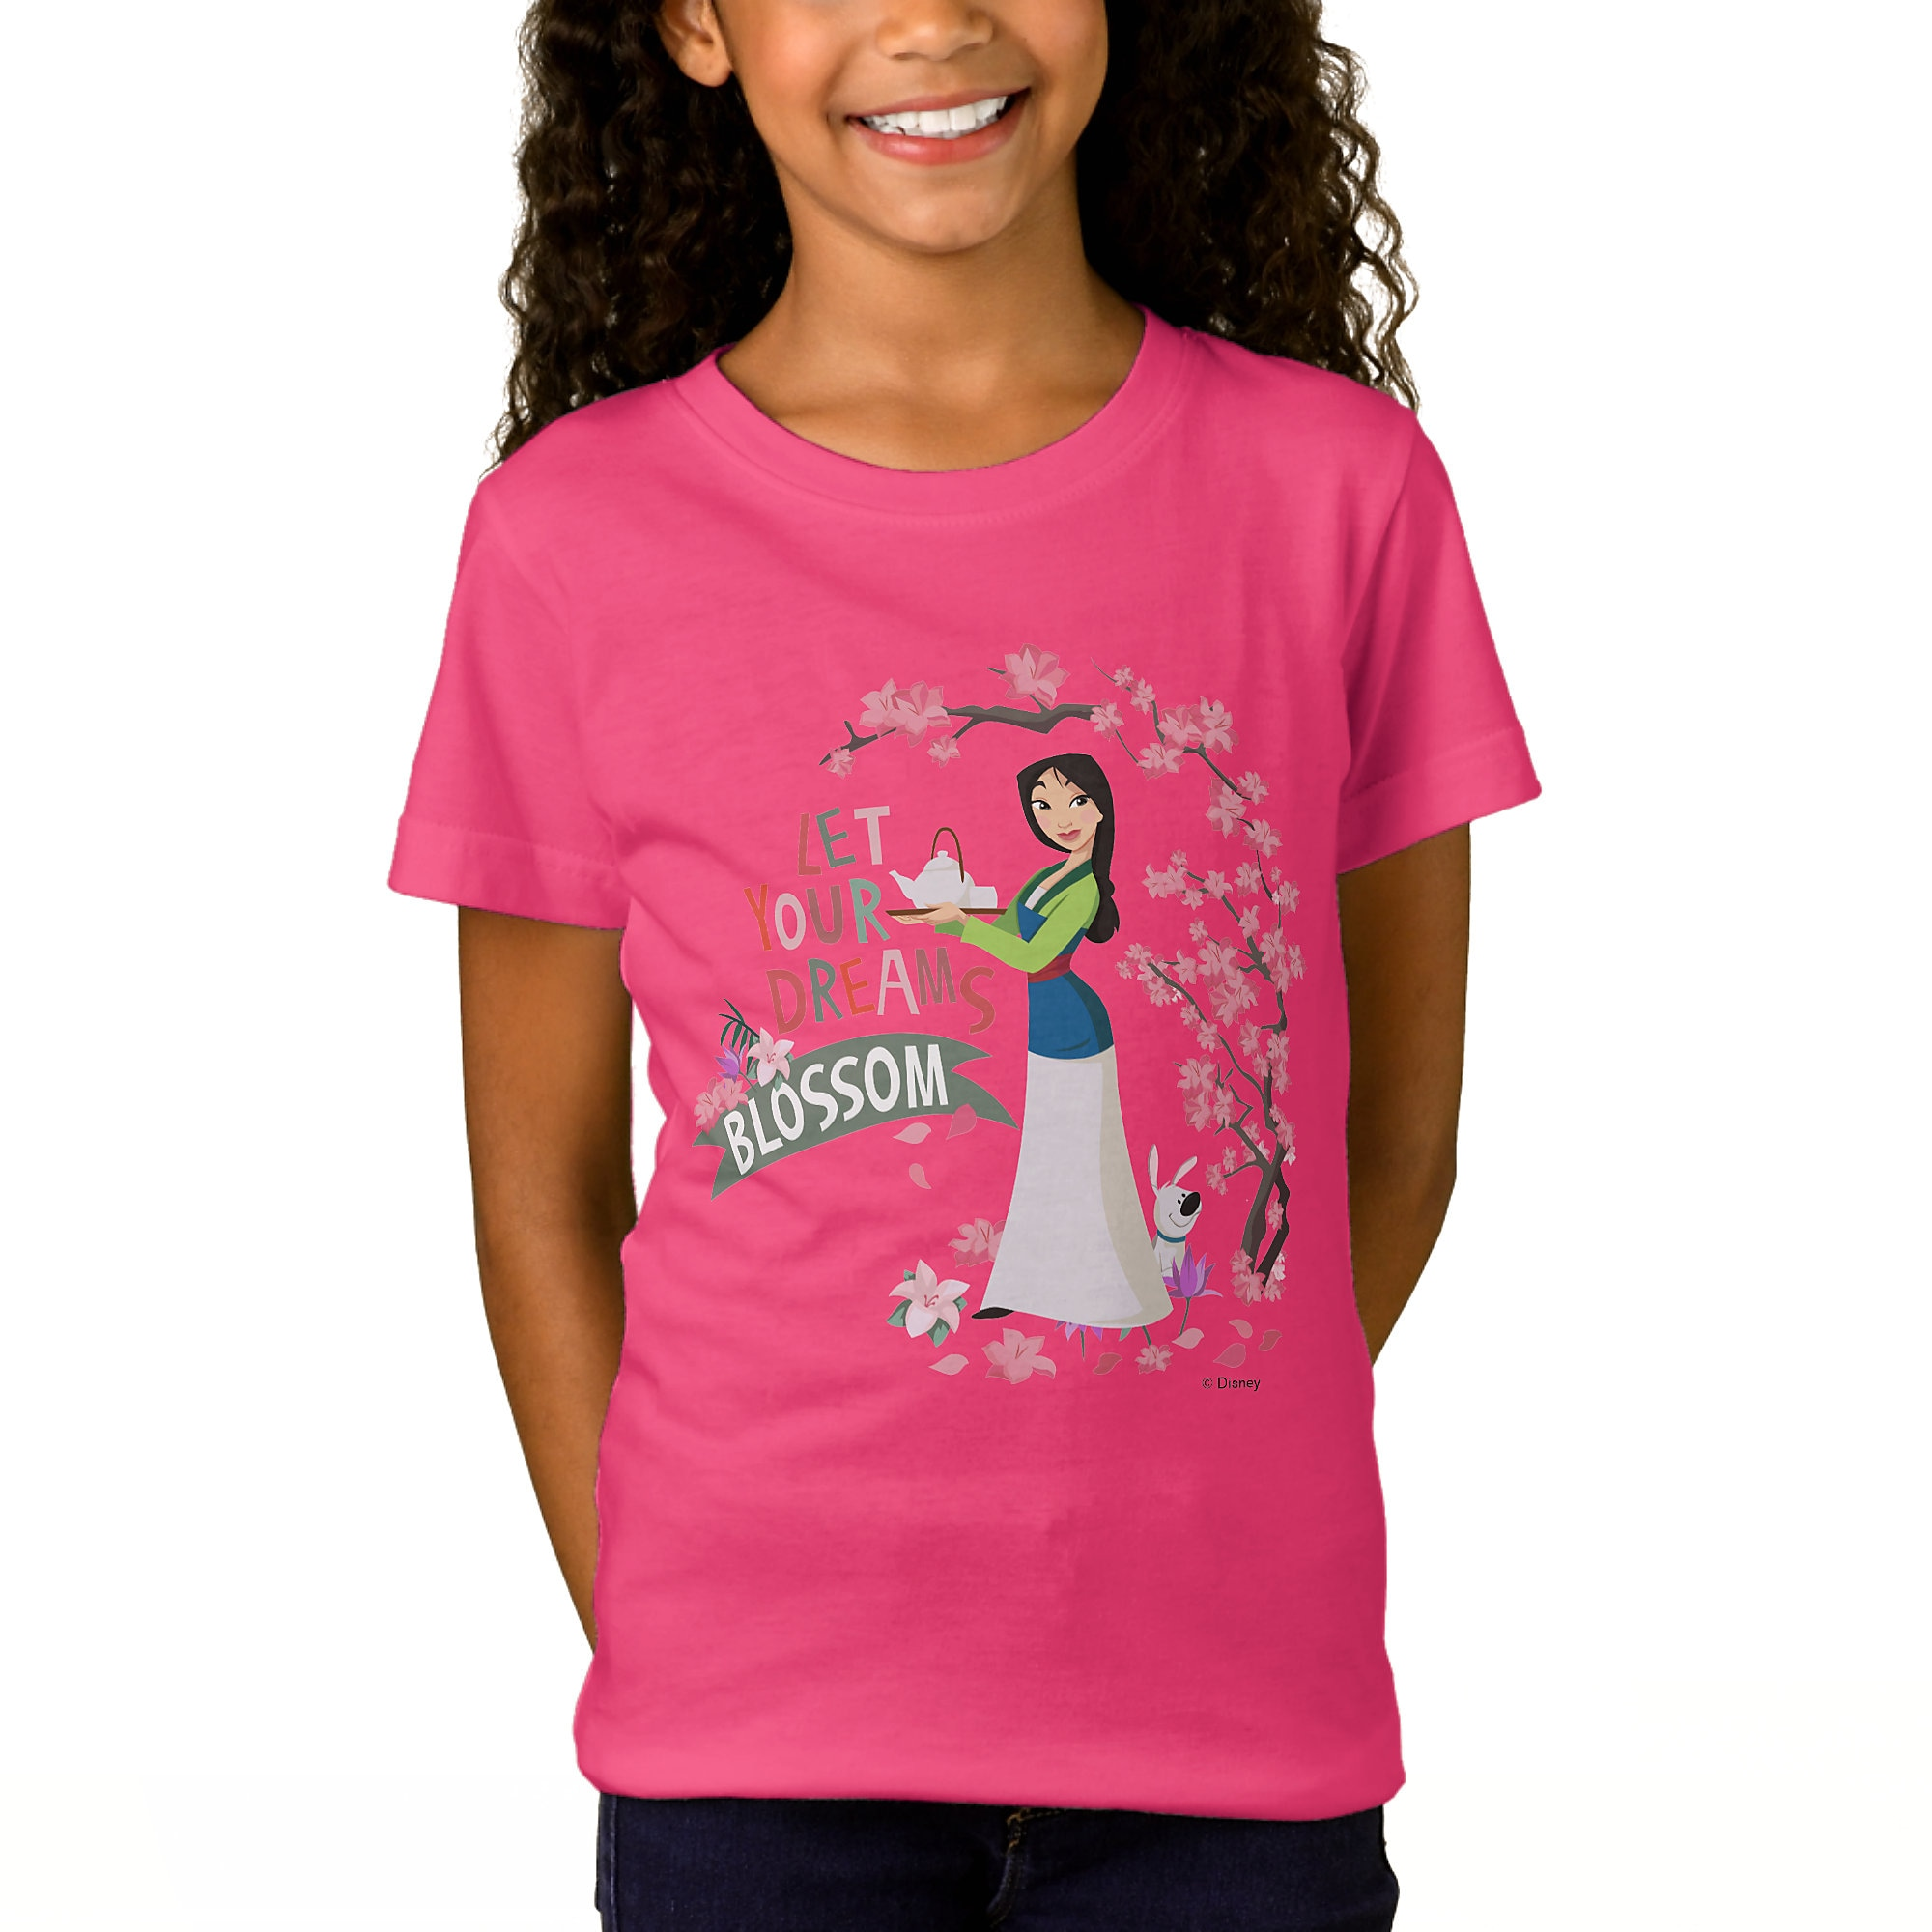 Mulan ''Let Your Dreams Blossom'' T-Shirt for Girls - Customizable